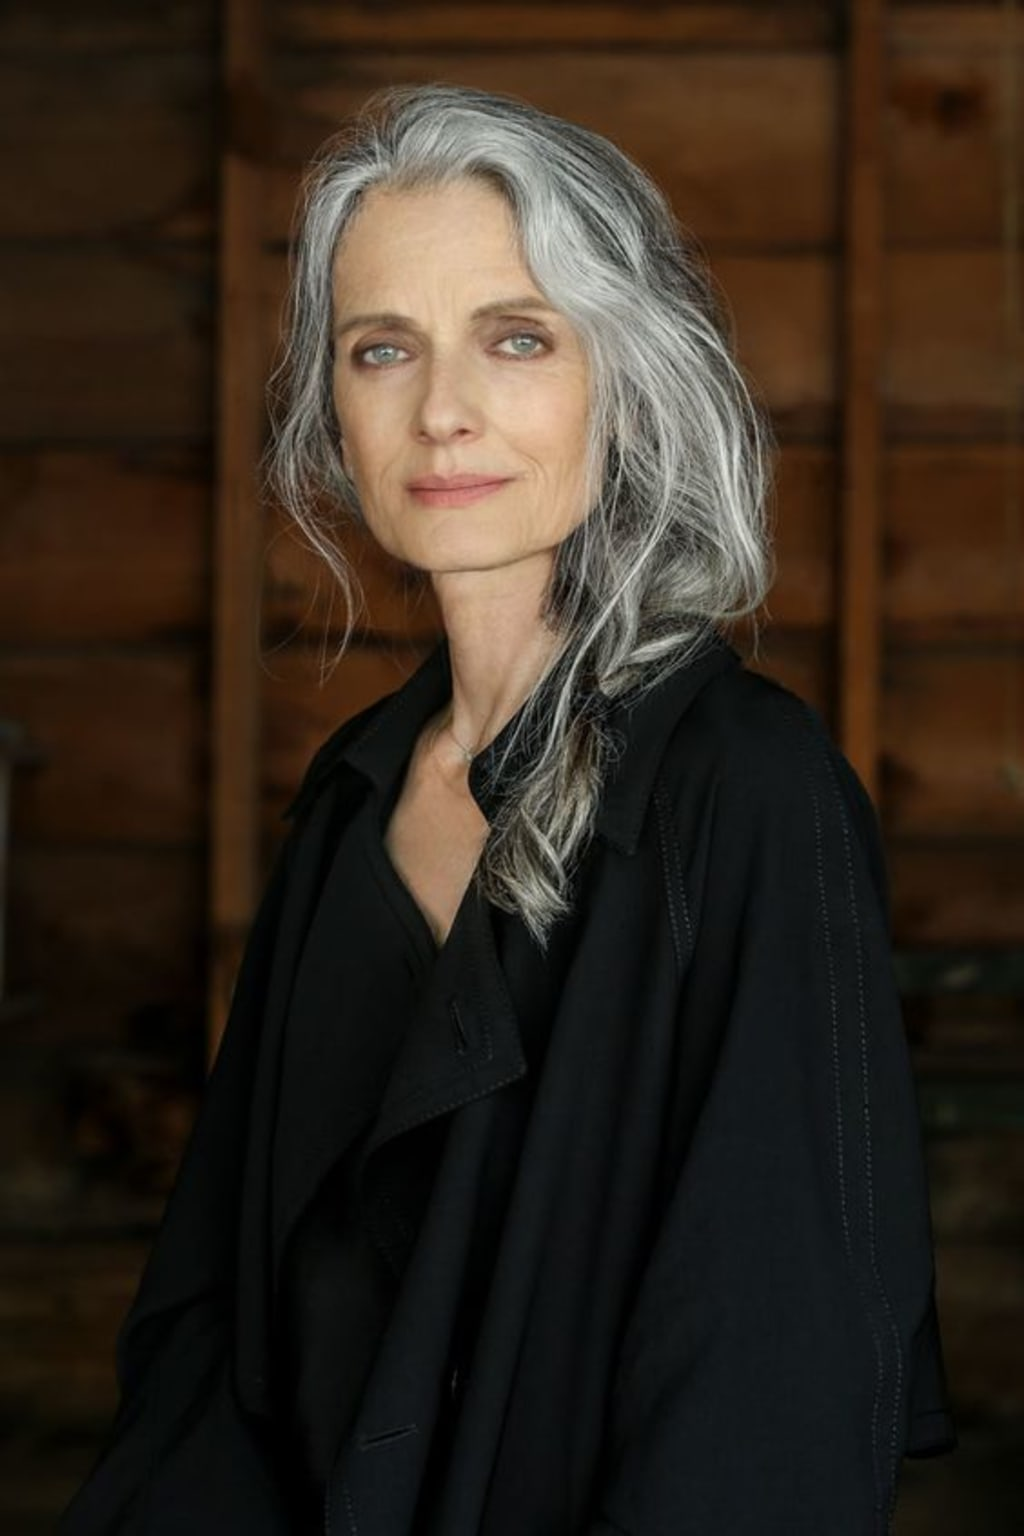 Going Grey: 10 Facts About Why, How, Genetics, and Hair Care